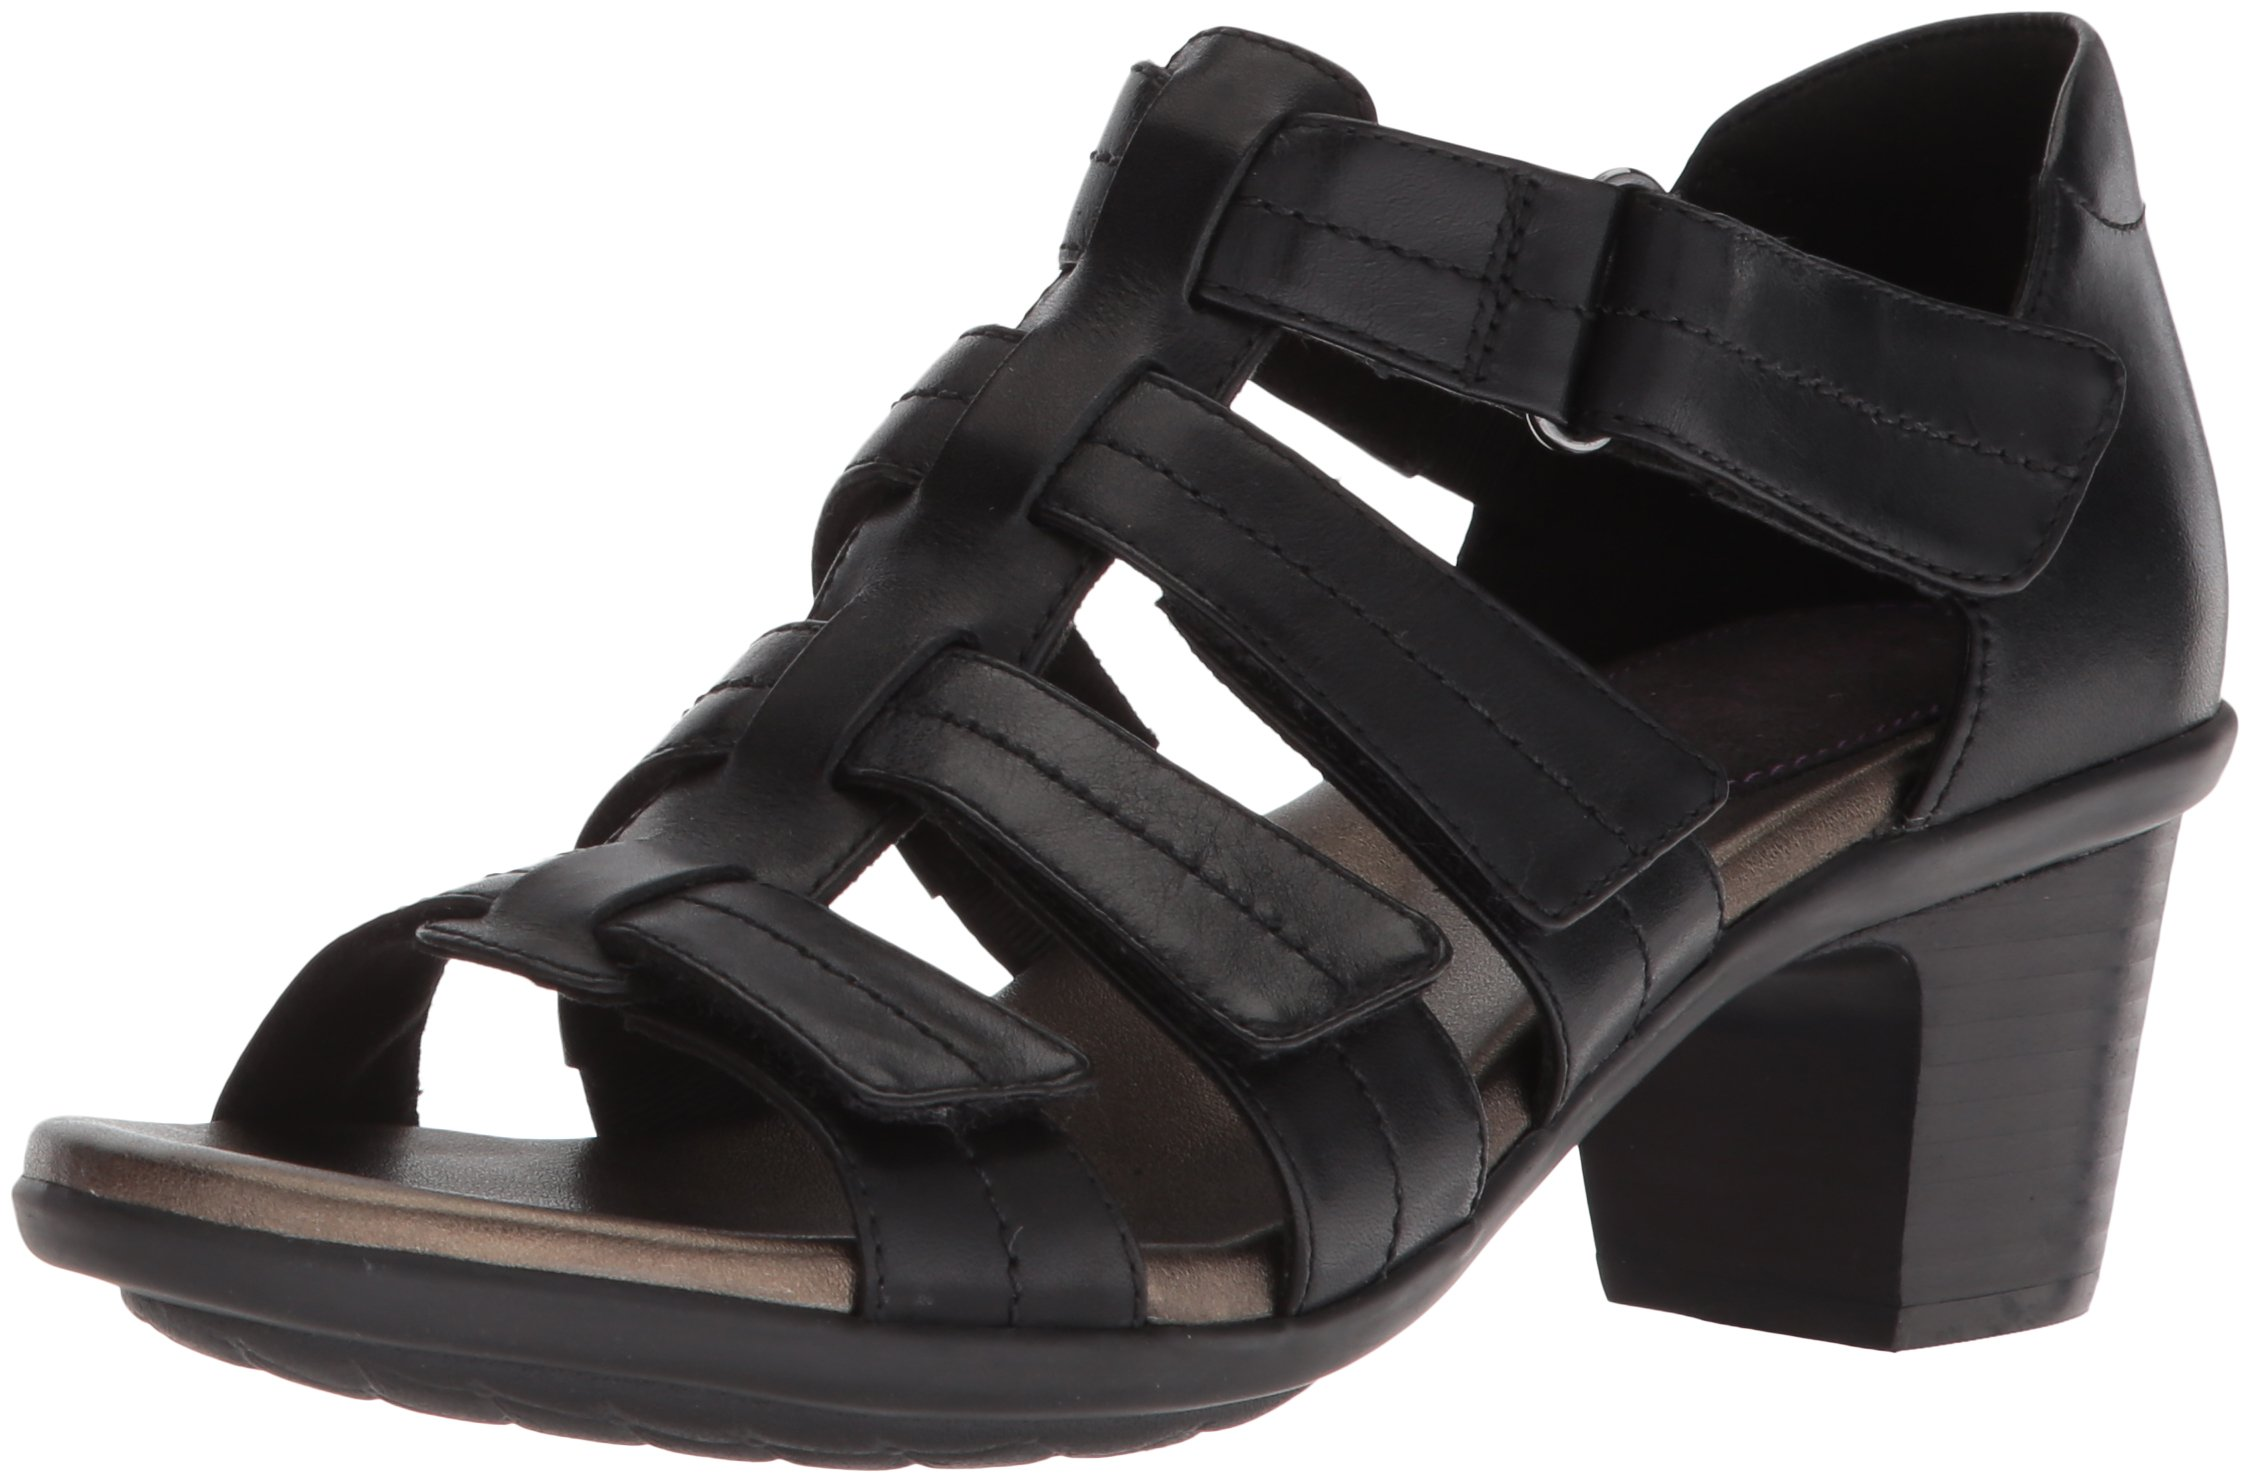 Aravon Women's Medici II Gladiator Heeled Sandal, Black, 10 B US by Aravon